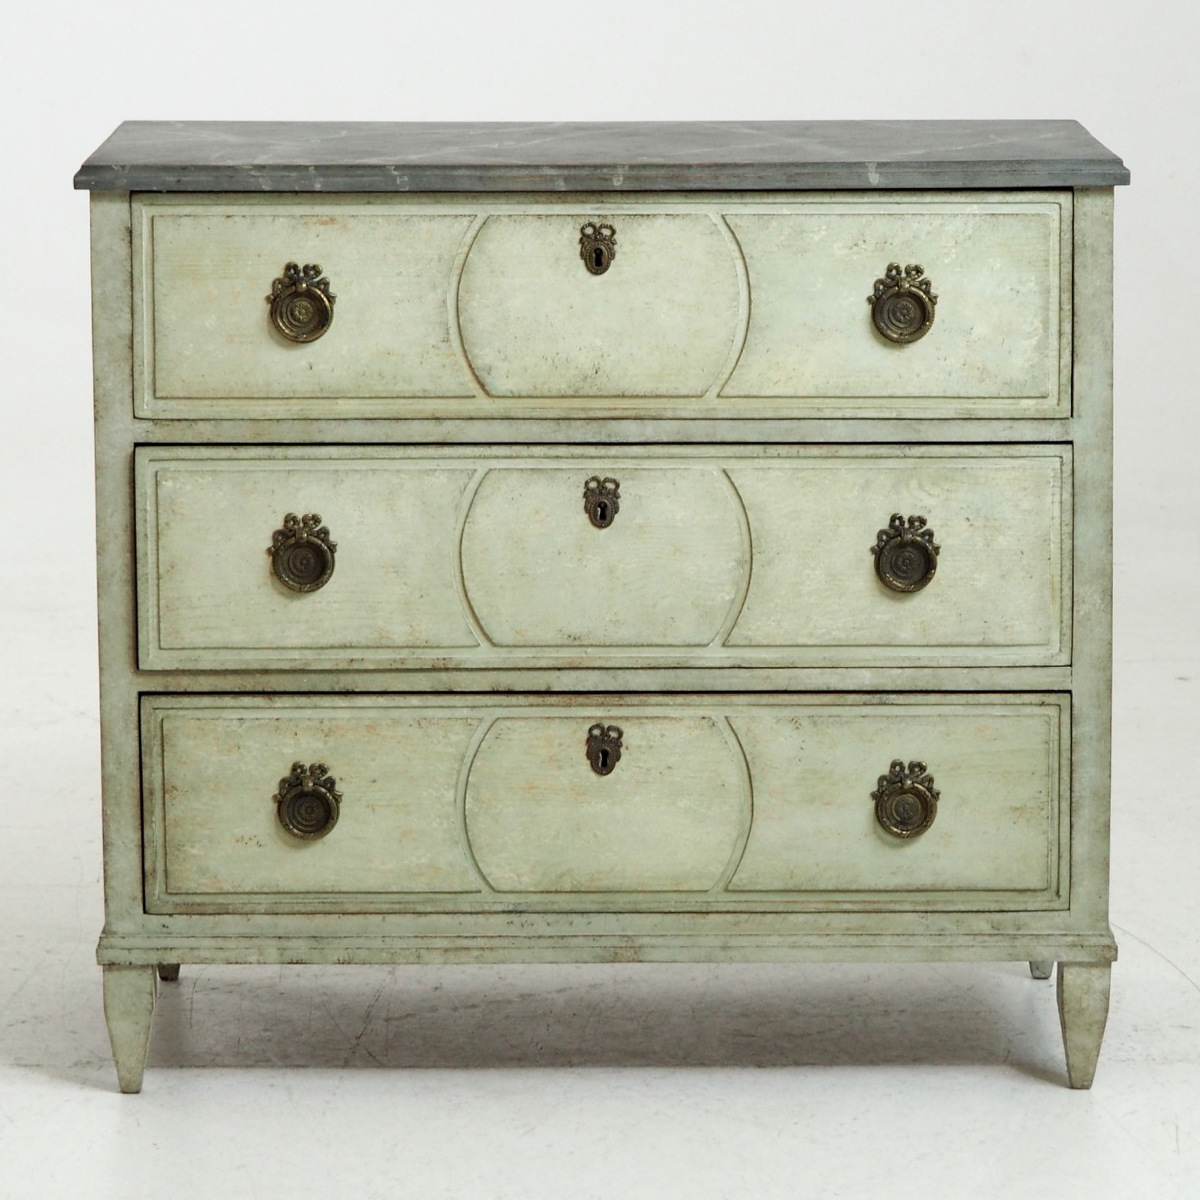 Fine Gustavian style chest, 19th C. - € 1.600